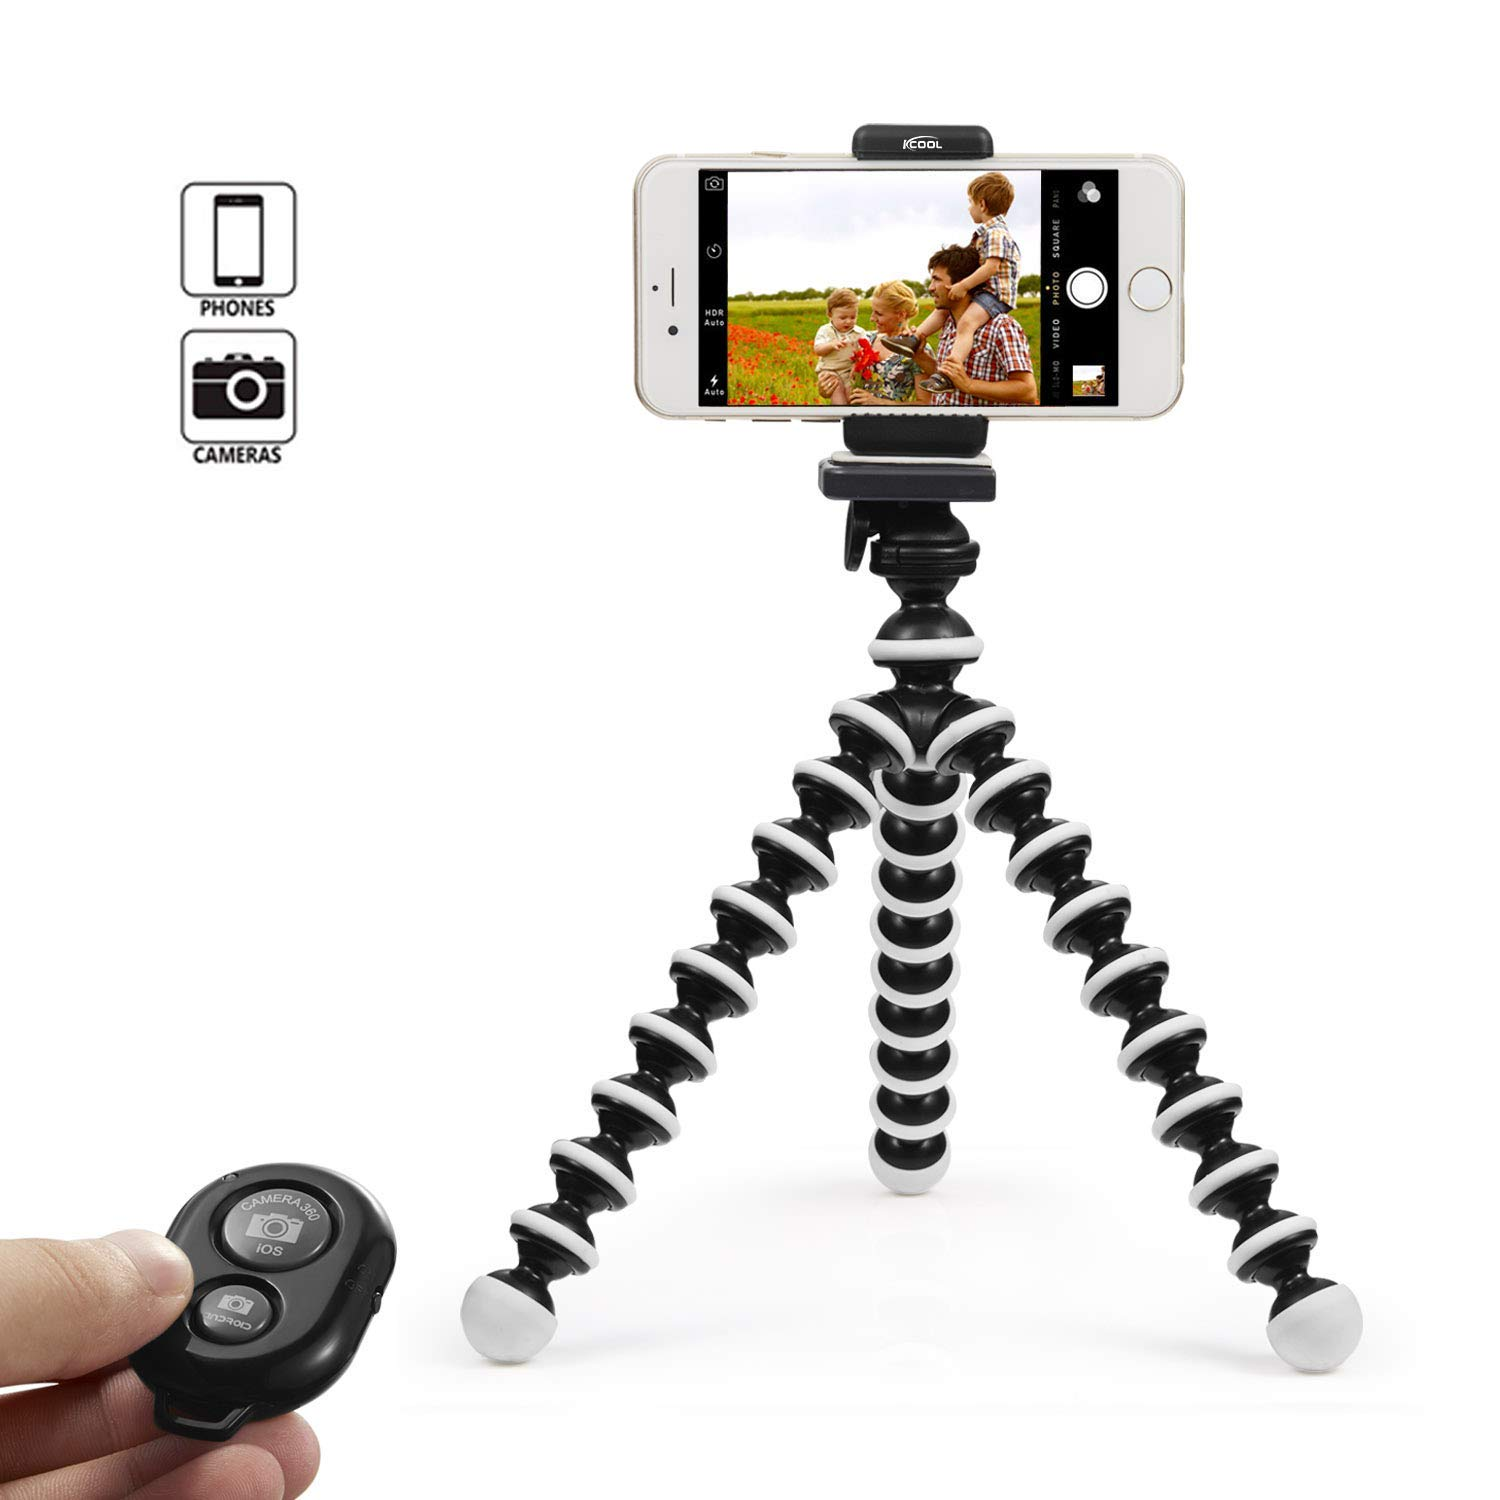 KCOOL Phone Tripod Stand Holder for iPhone, Cellphone,Camera with Universal Clip and Remote (Black White) (Black-White) (Black-White)